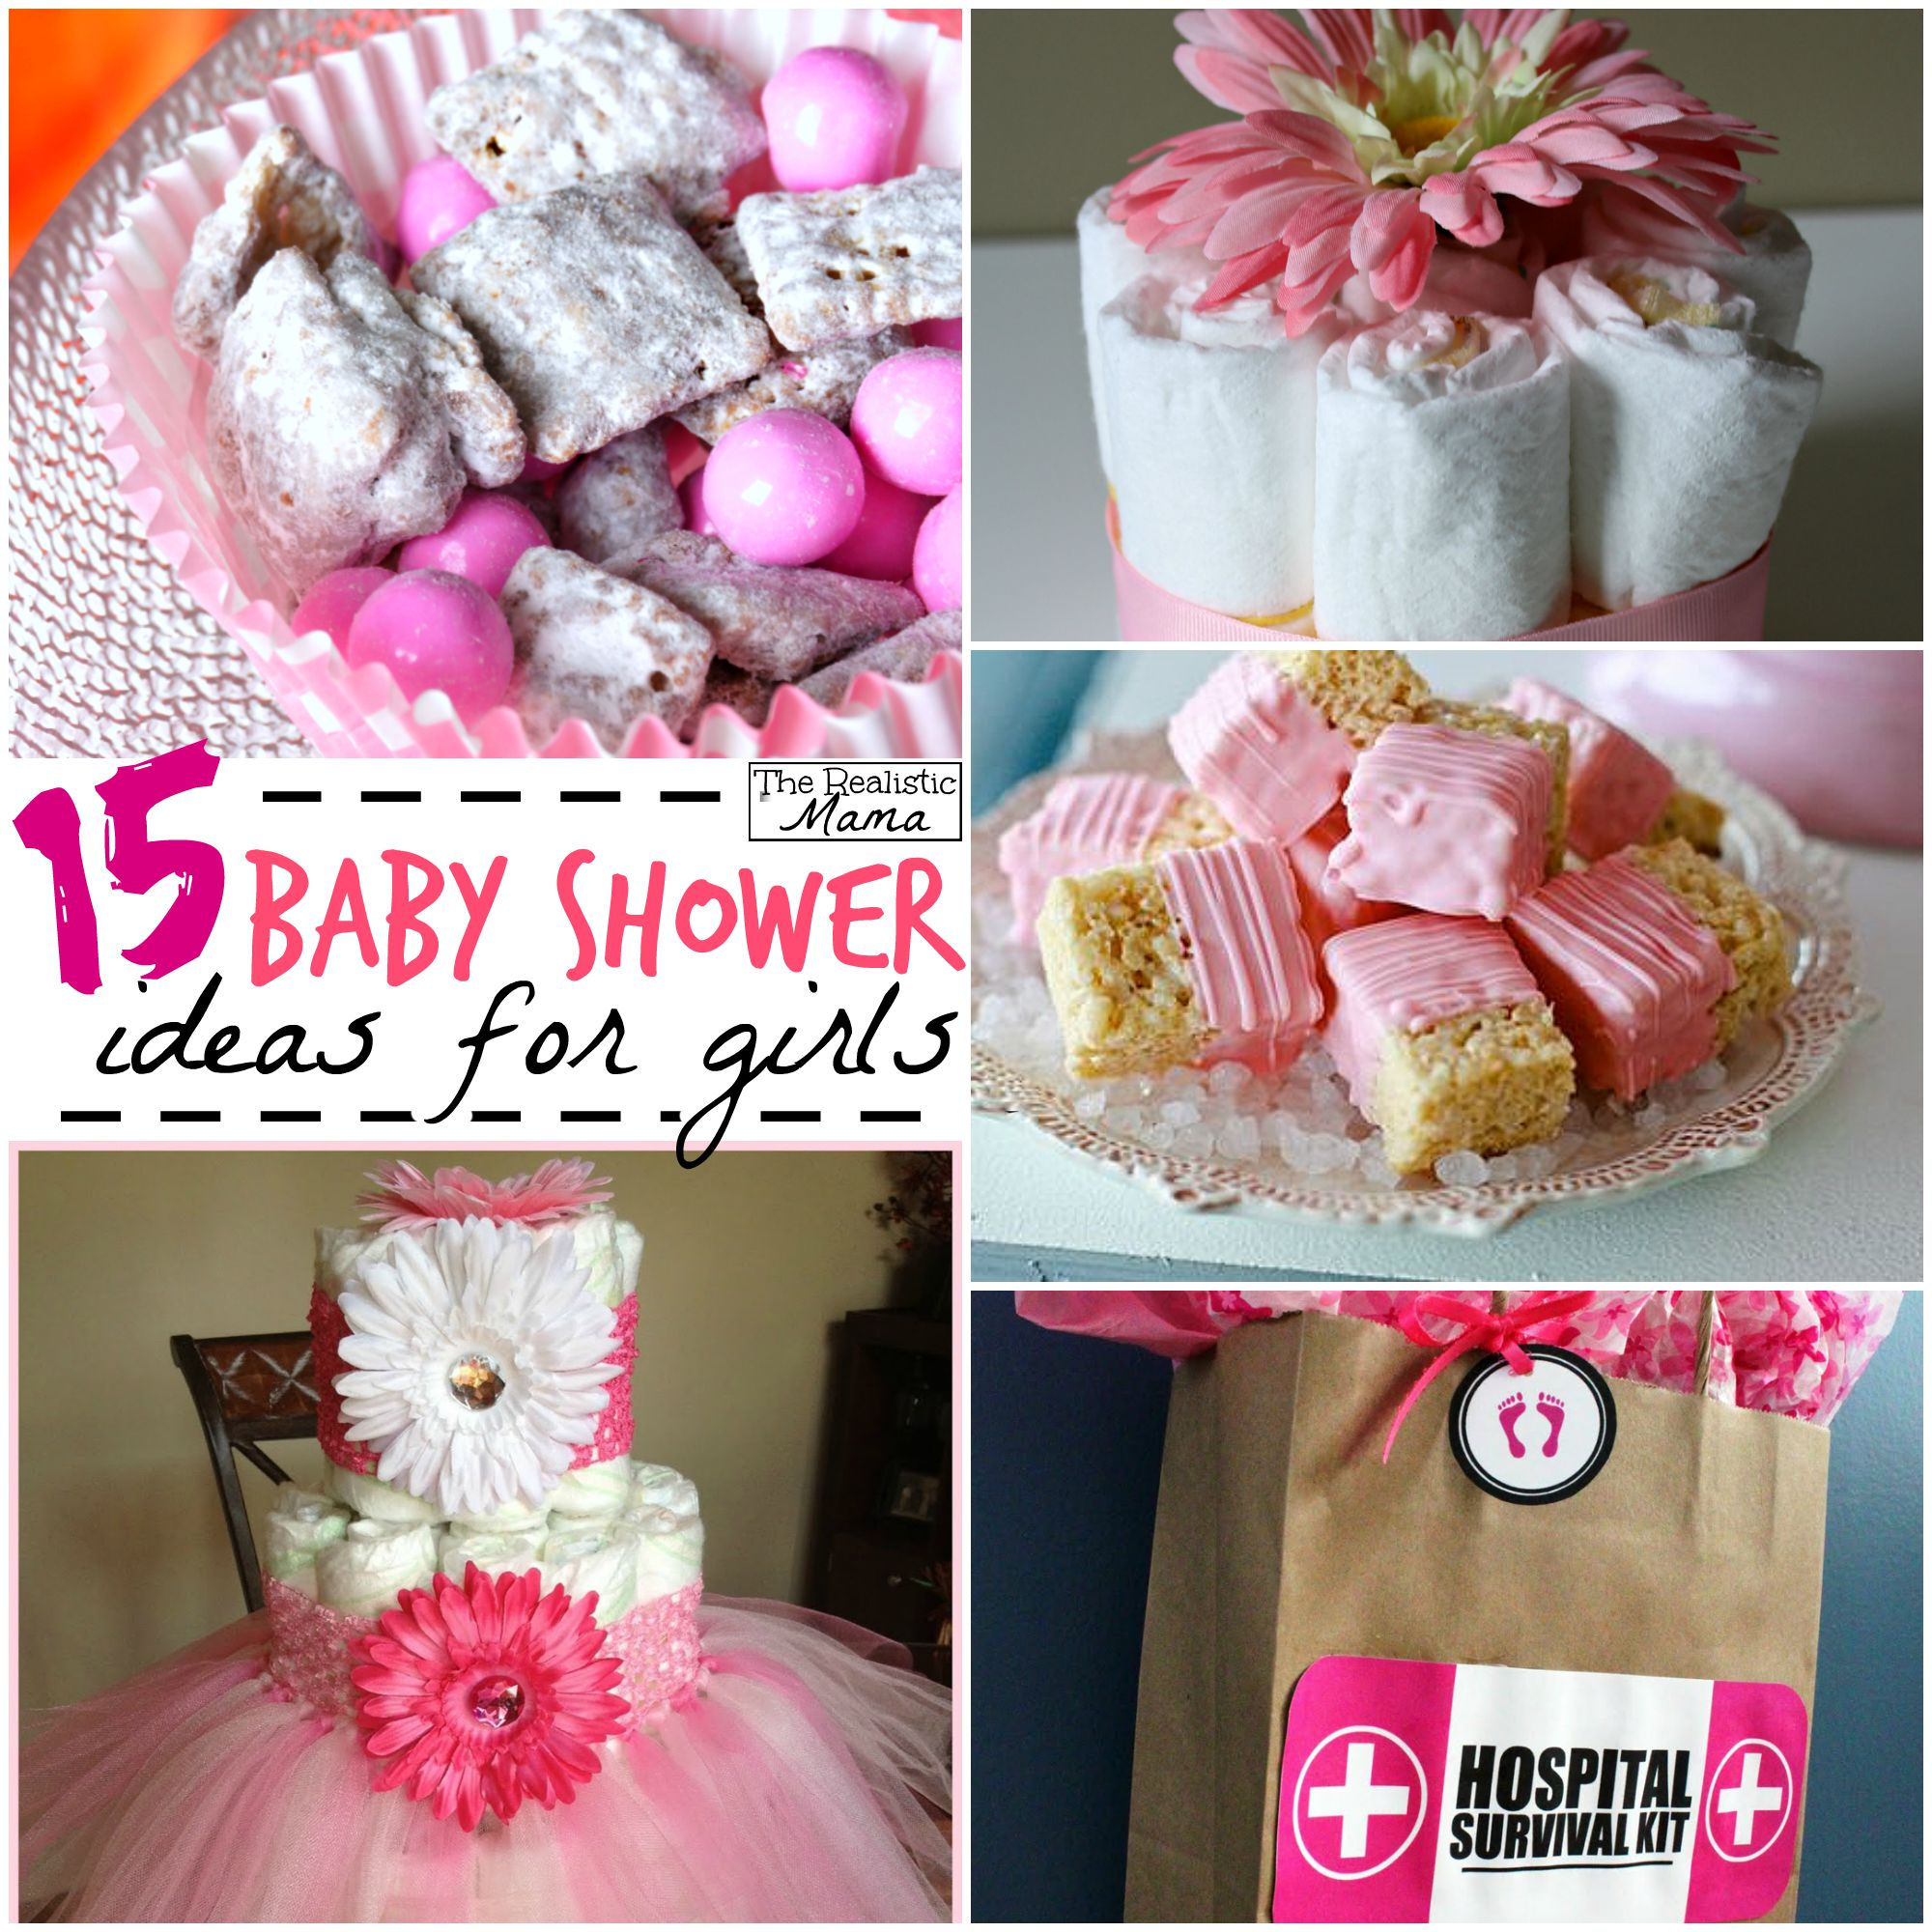 15 Baby Shower Ideas For Girls